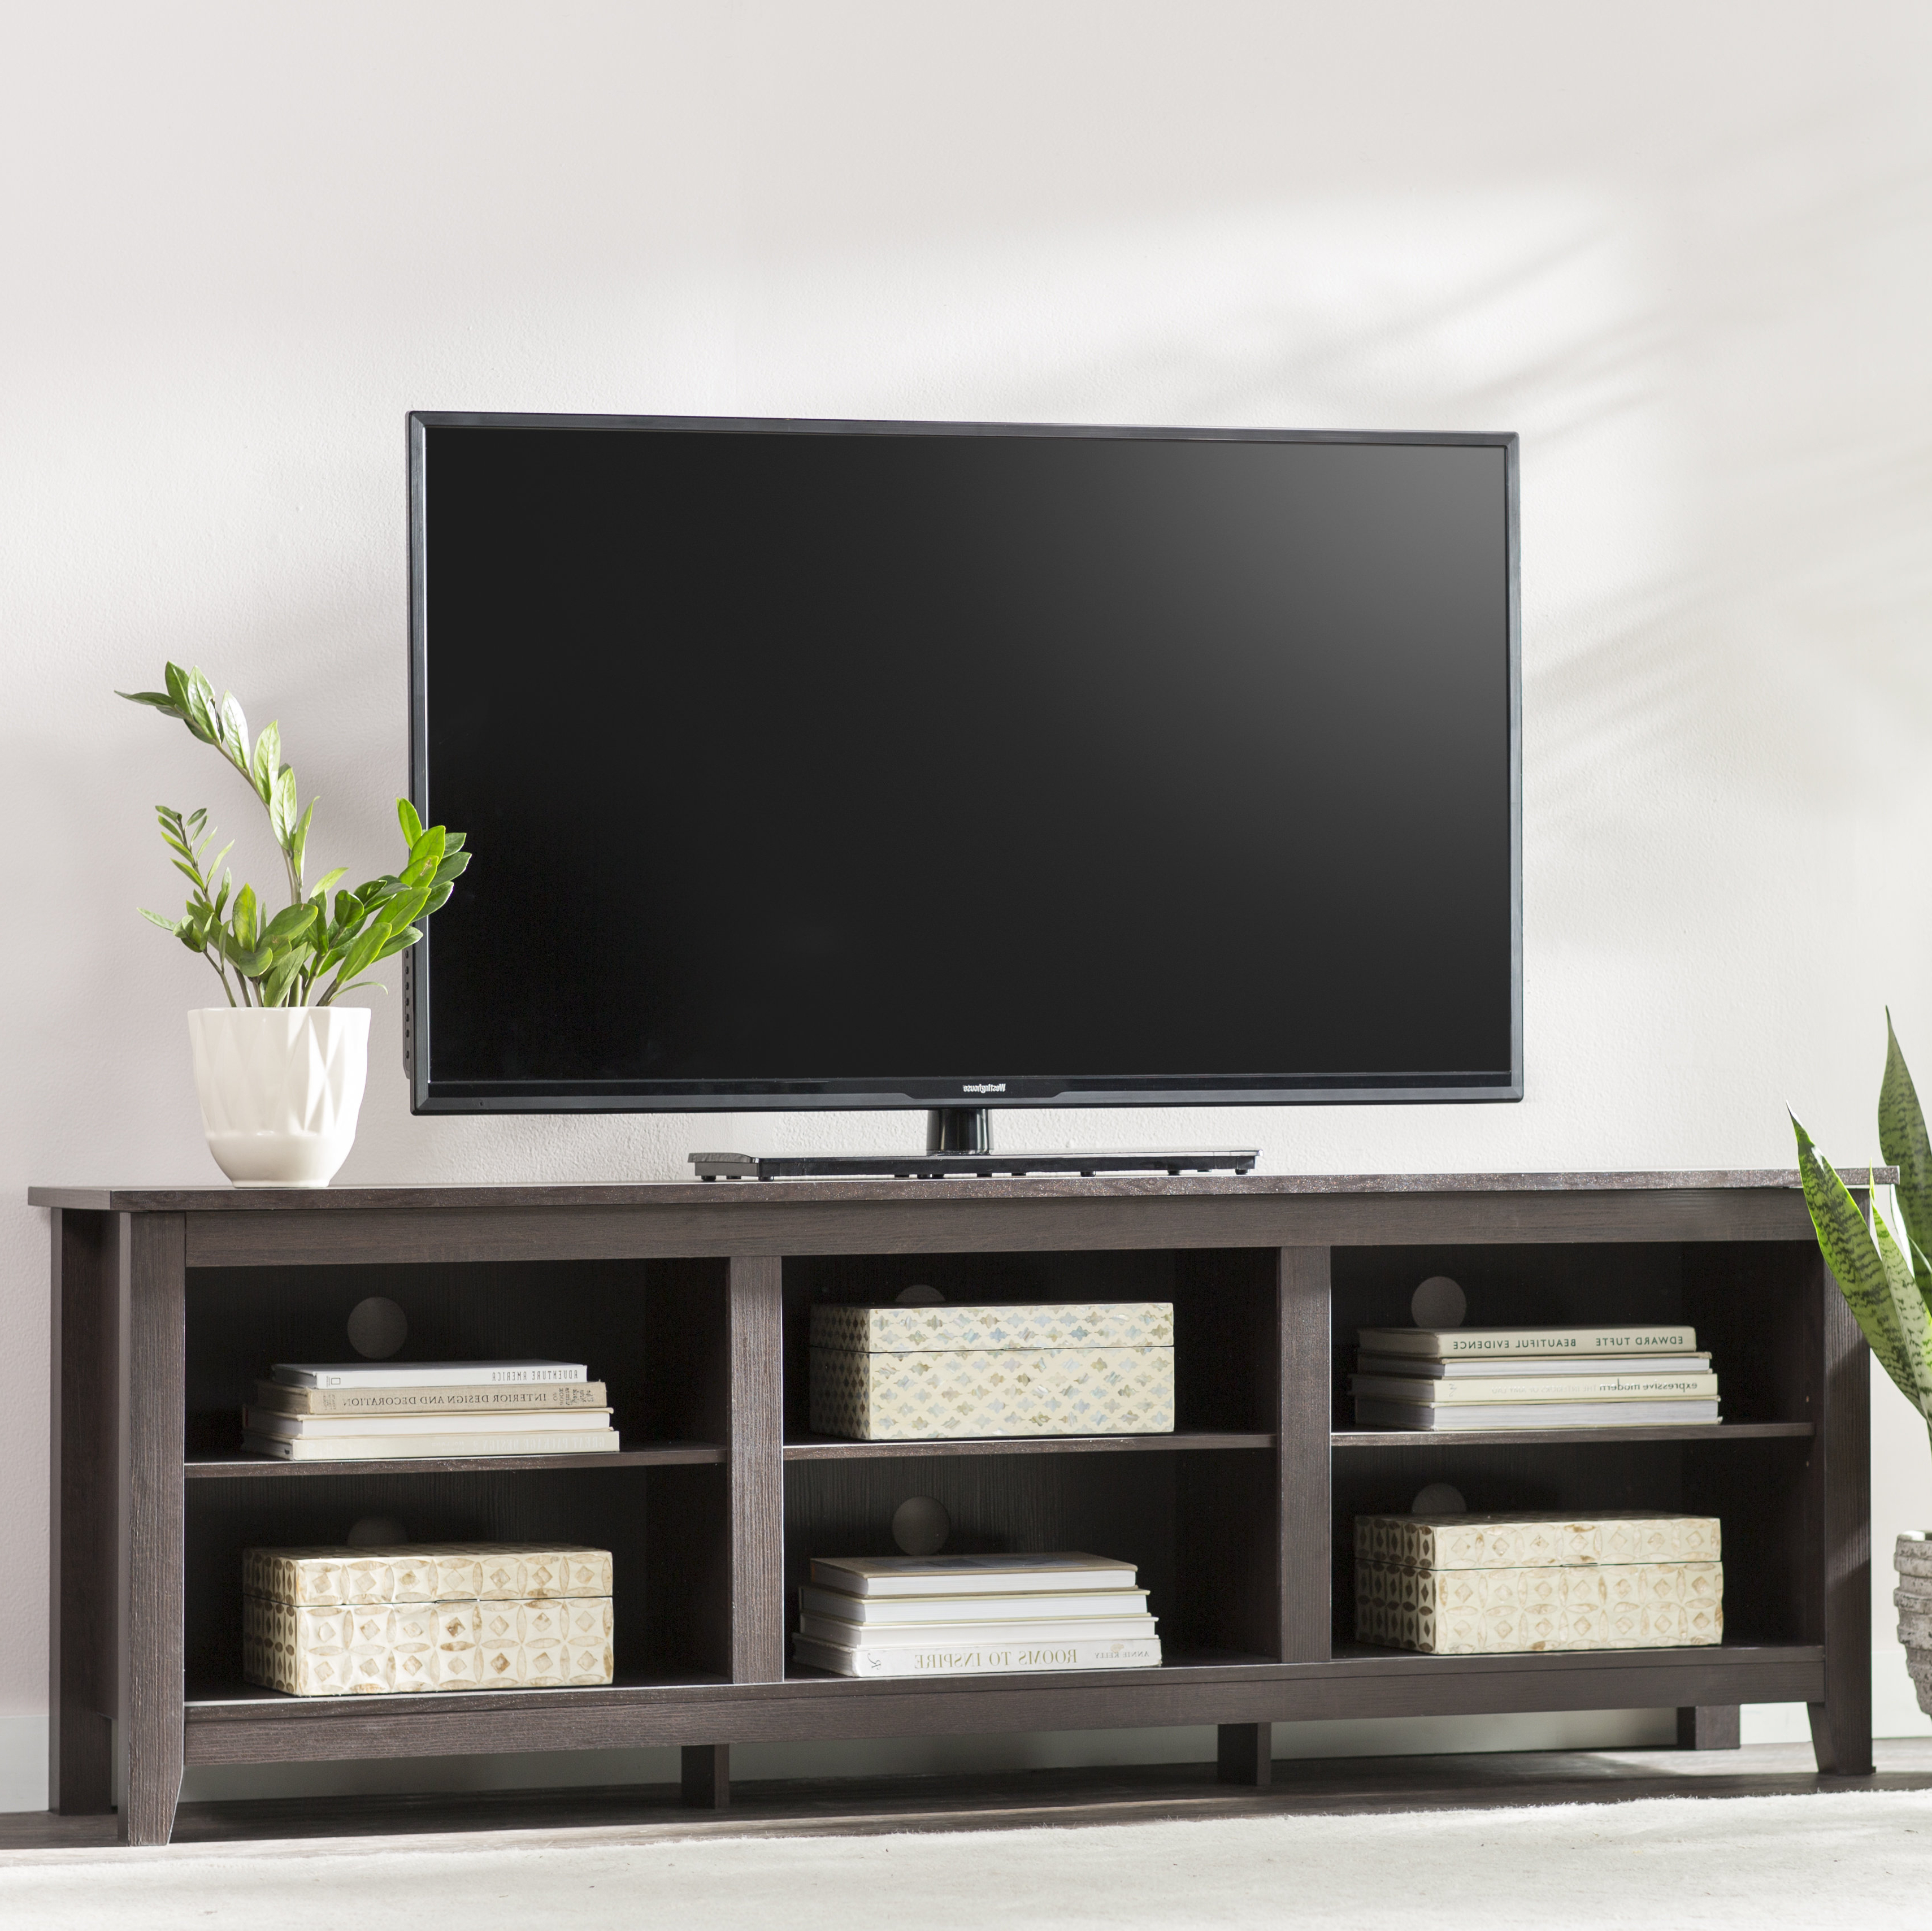 Tv Stand For 65 Inch Tv Corner | Wayfair With Regard To Century Blue 60 Inch Tv Stands (View 18 of 20)